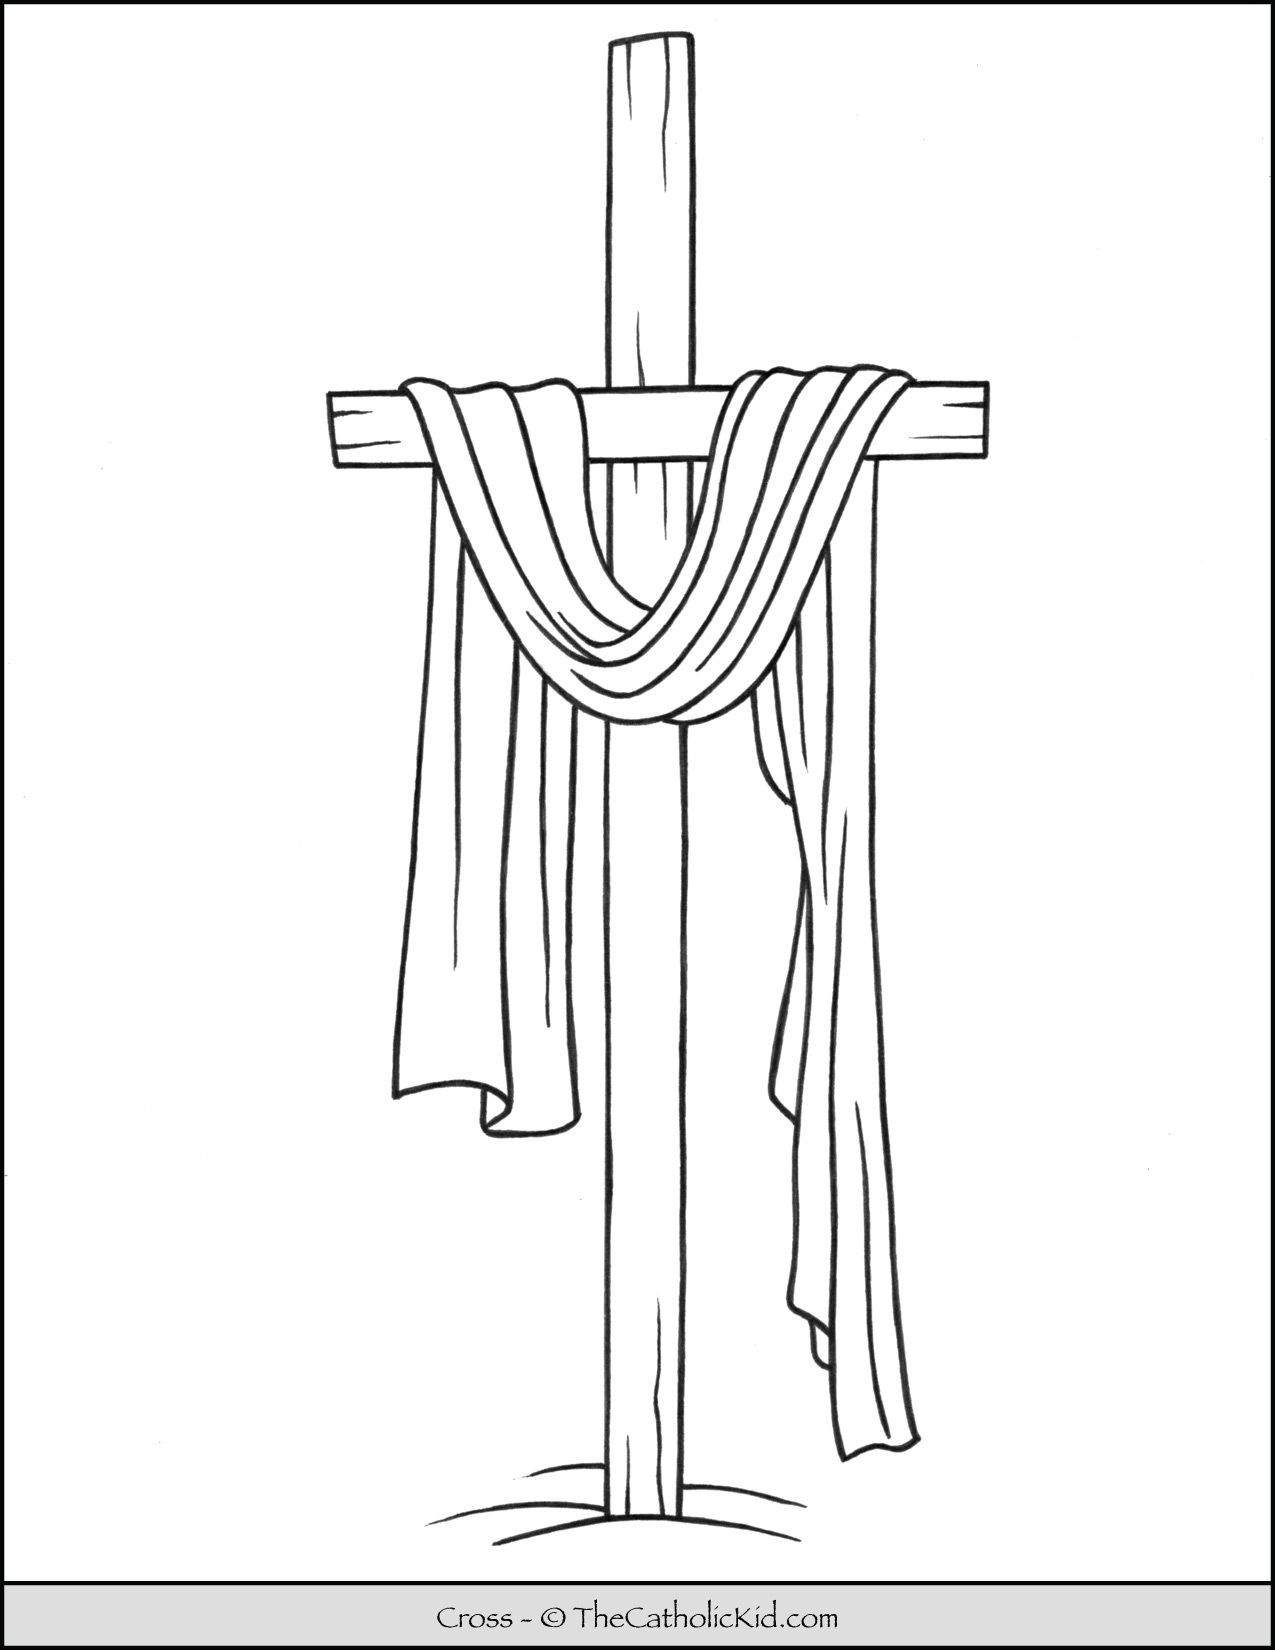 Lent Coloring Page Cross Draped Thecatholickid Com Catholic Coloring Jesus Coloring Pages Cross Coloring Page